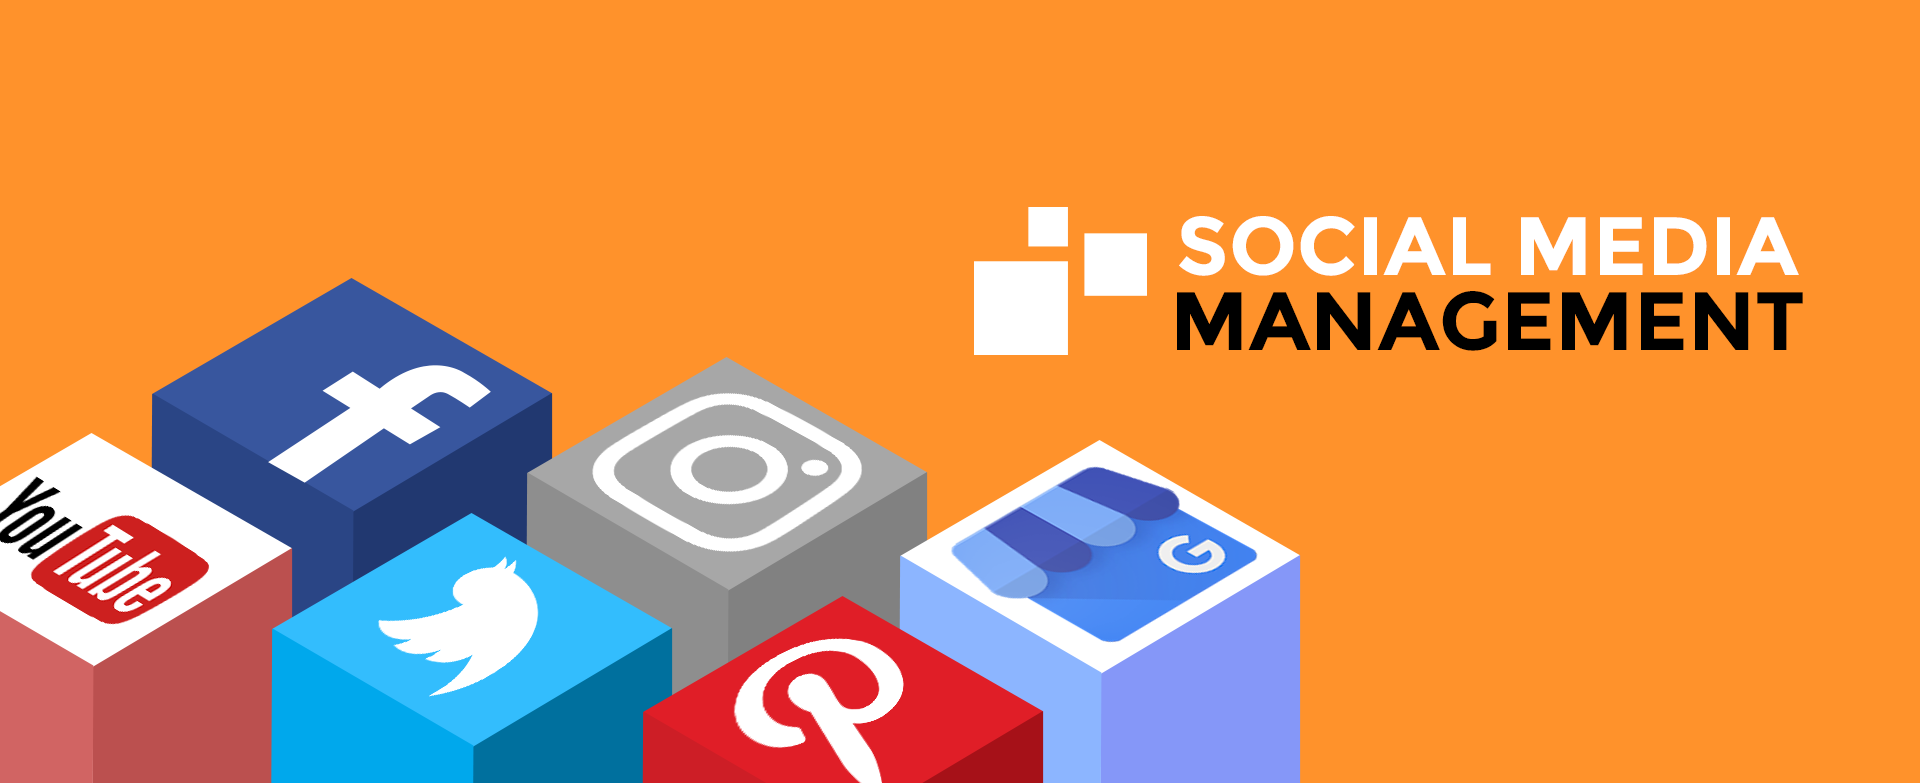 Importance of Social Media Management in Modern Business Scenario